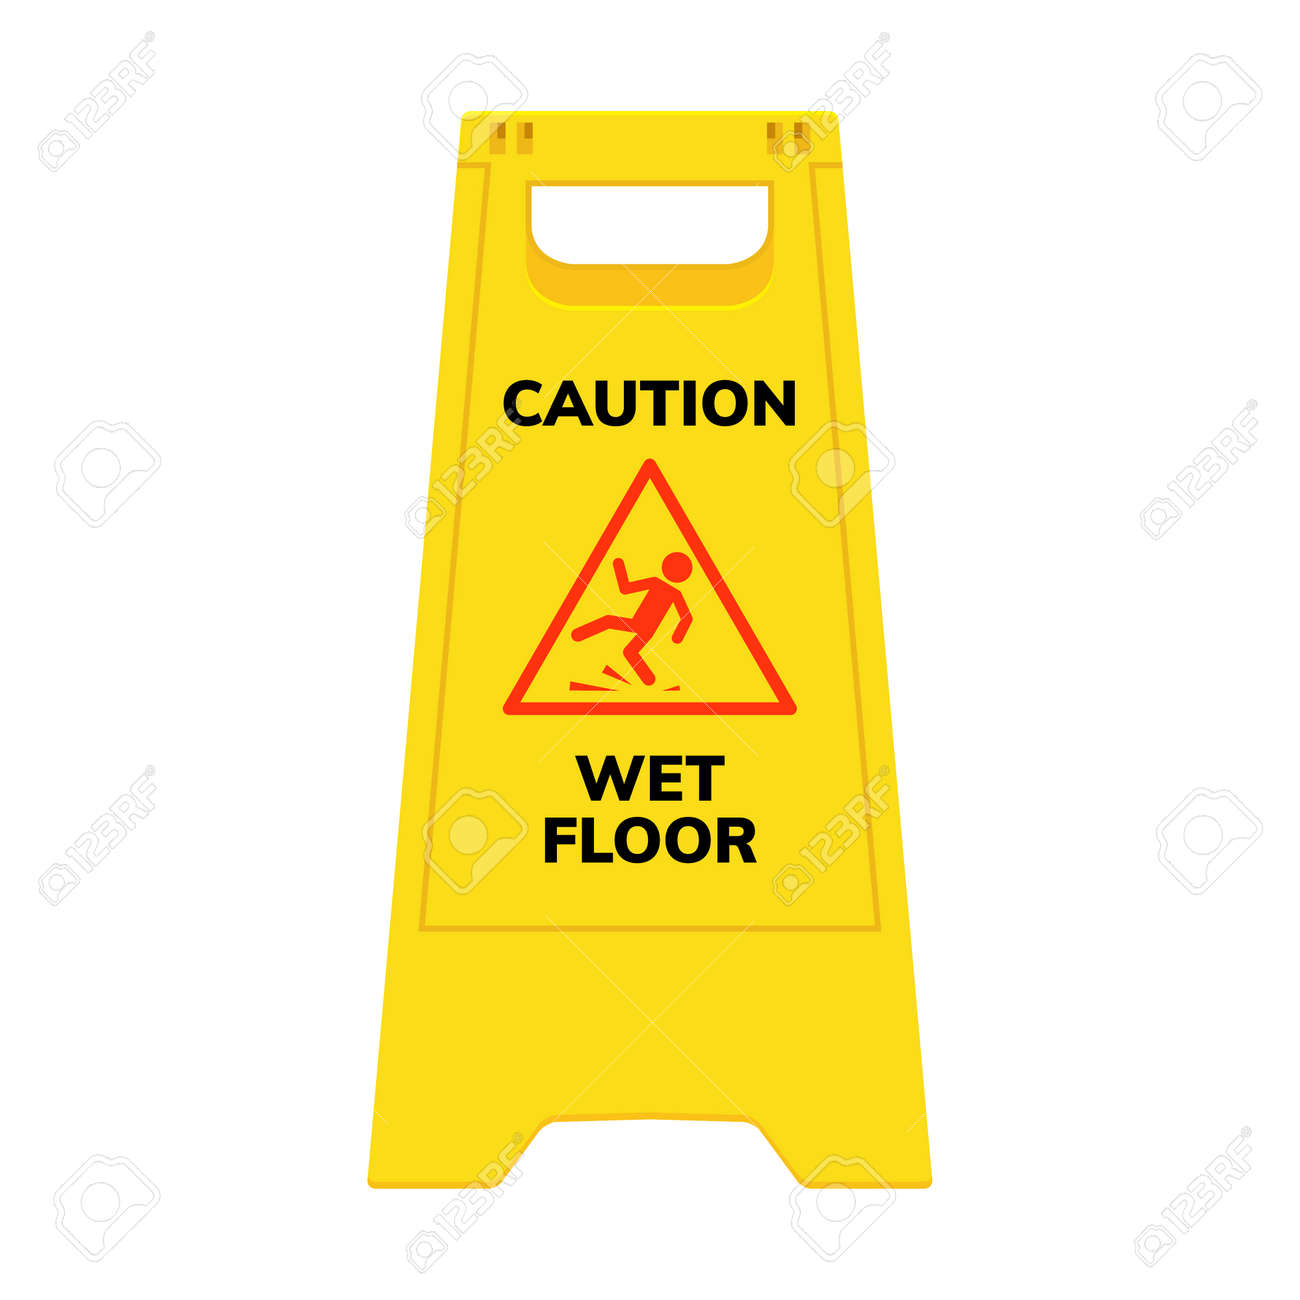 Wet floor sign. Safety yellow slippery floor warning icon vector caution symbol - 168952819